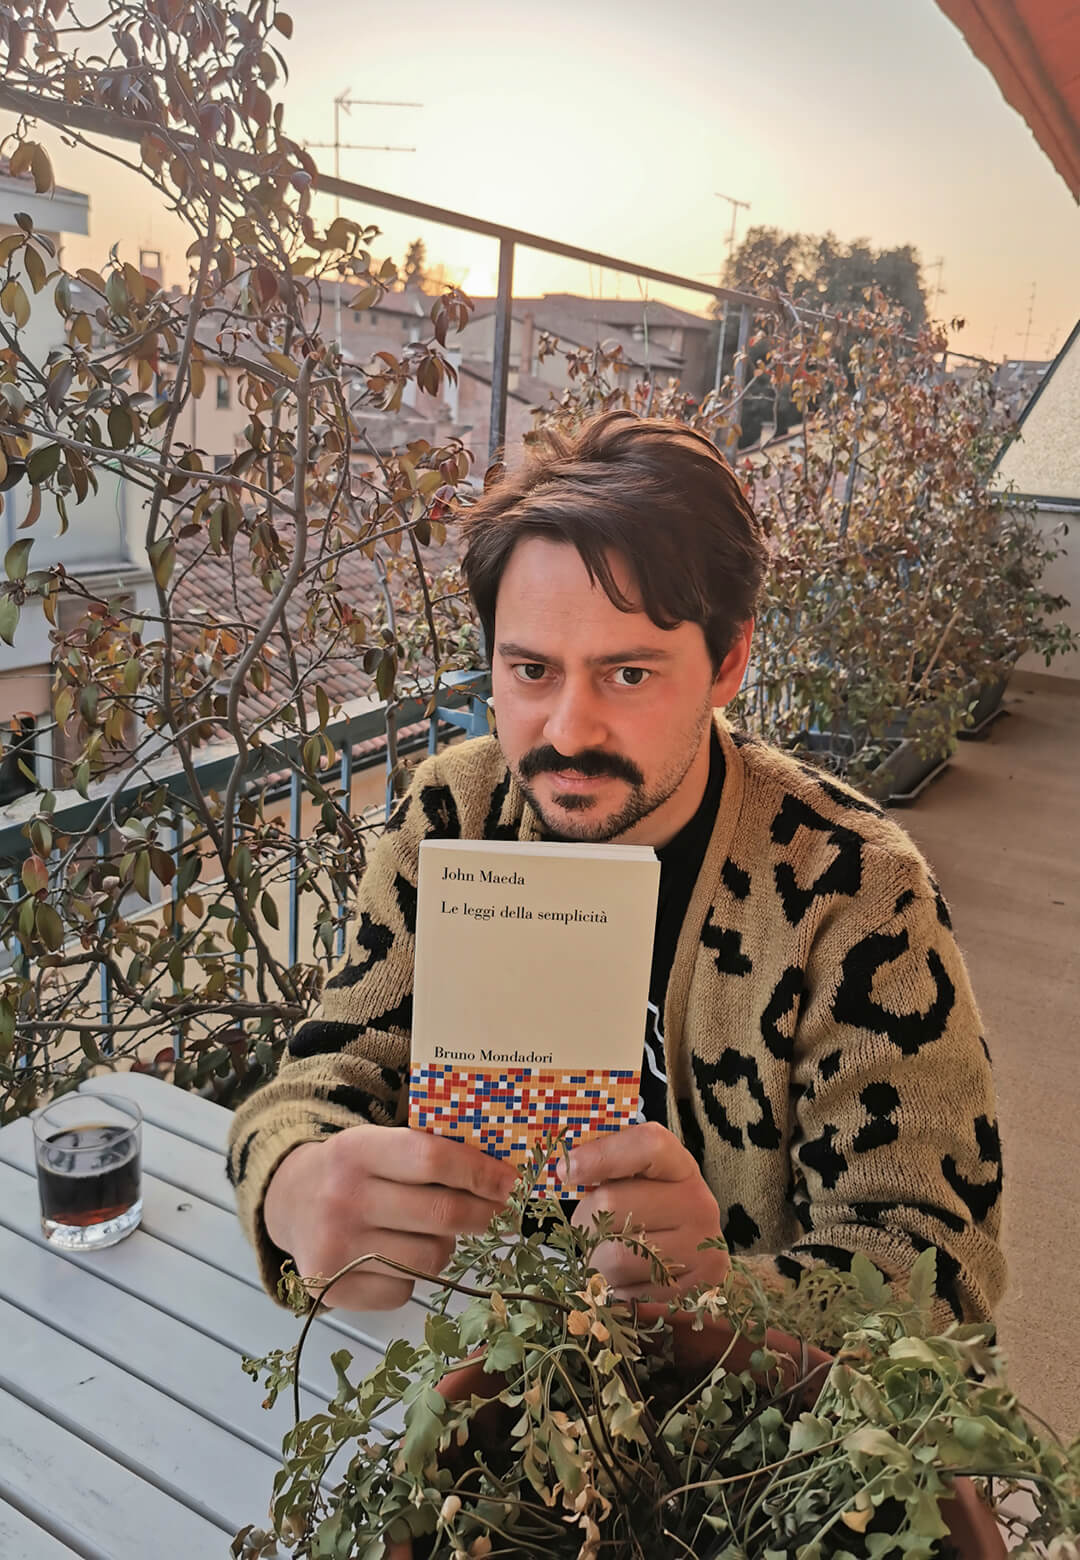 Left: Gianluca Gimini reading the Italian version of the Laws of Simplicity by John Maeda; Right: The book cover of the English version  John Maeda    The Laws of Simplicity   STIRworld